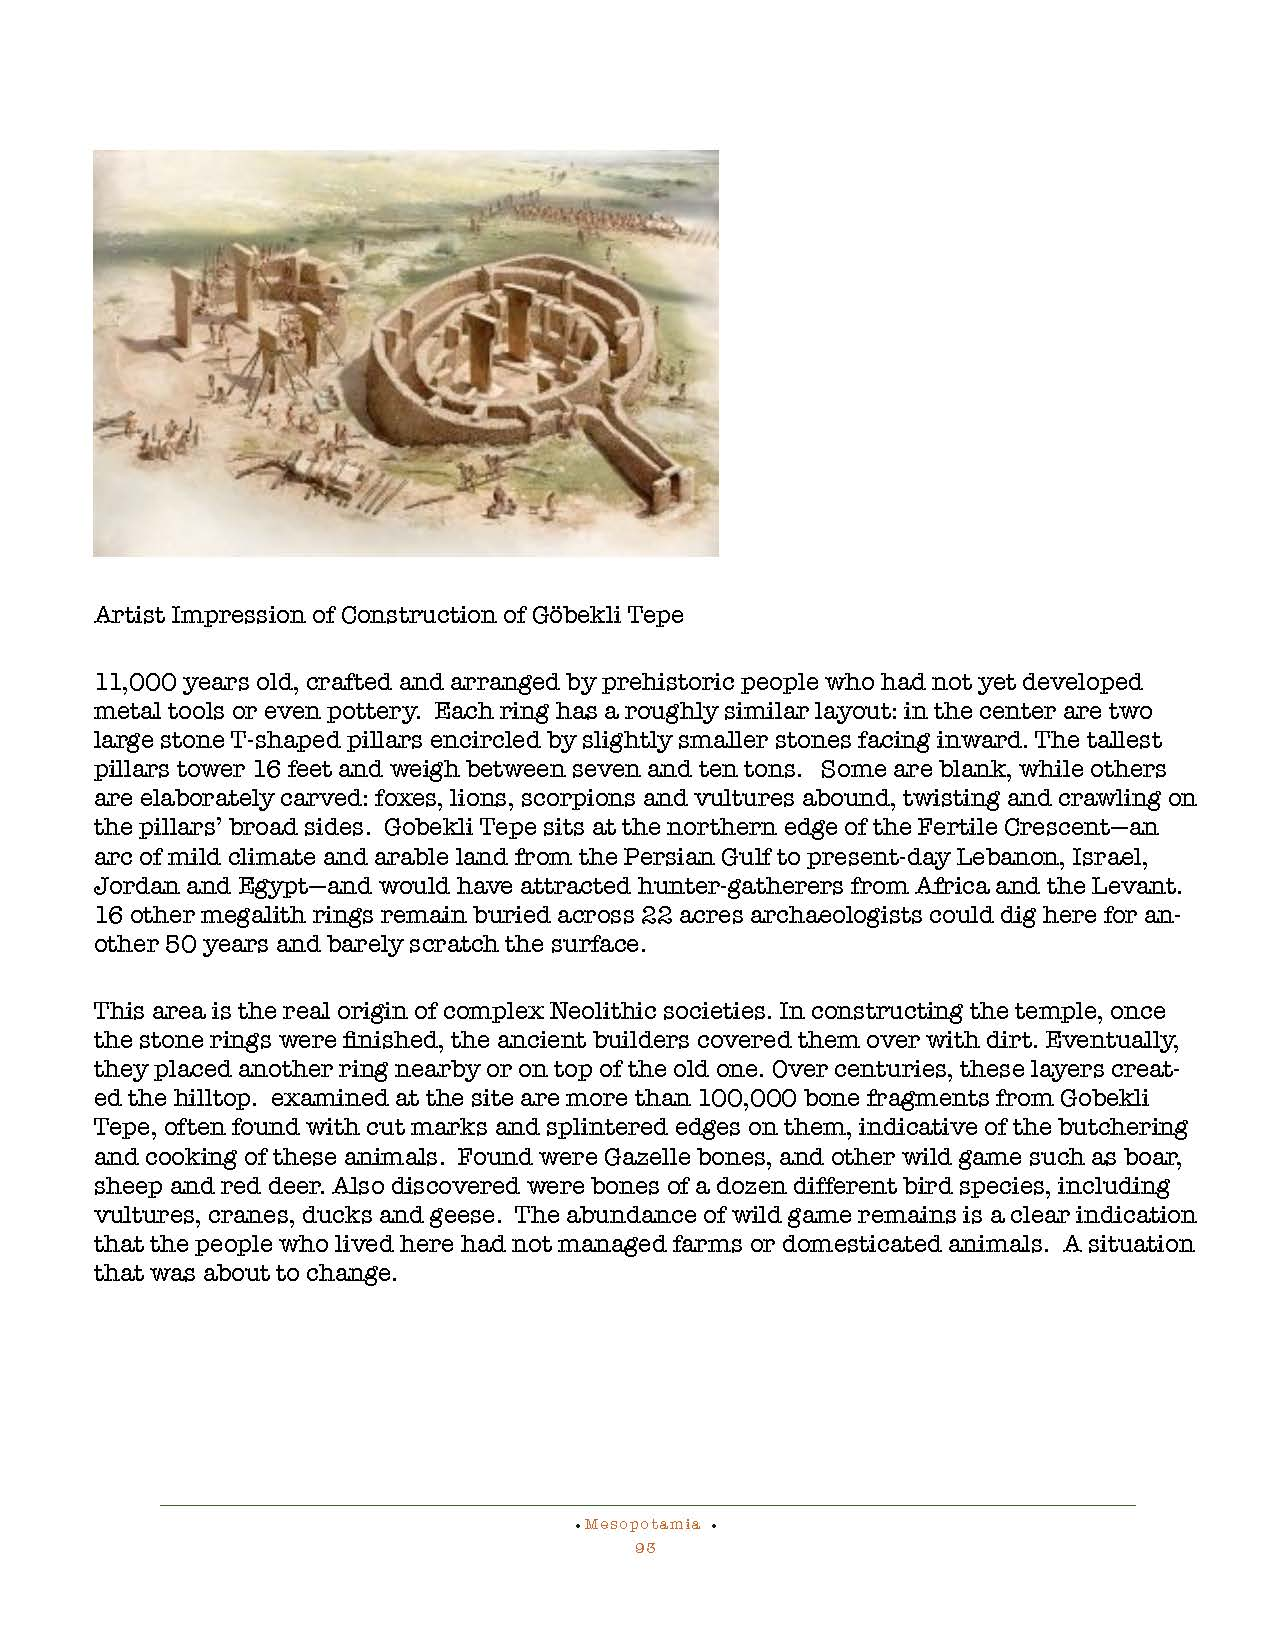 HOCE- Fertile Crescent Notes_Page_093.jpg